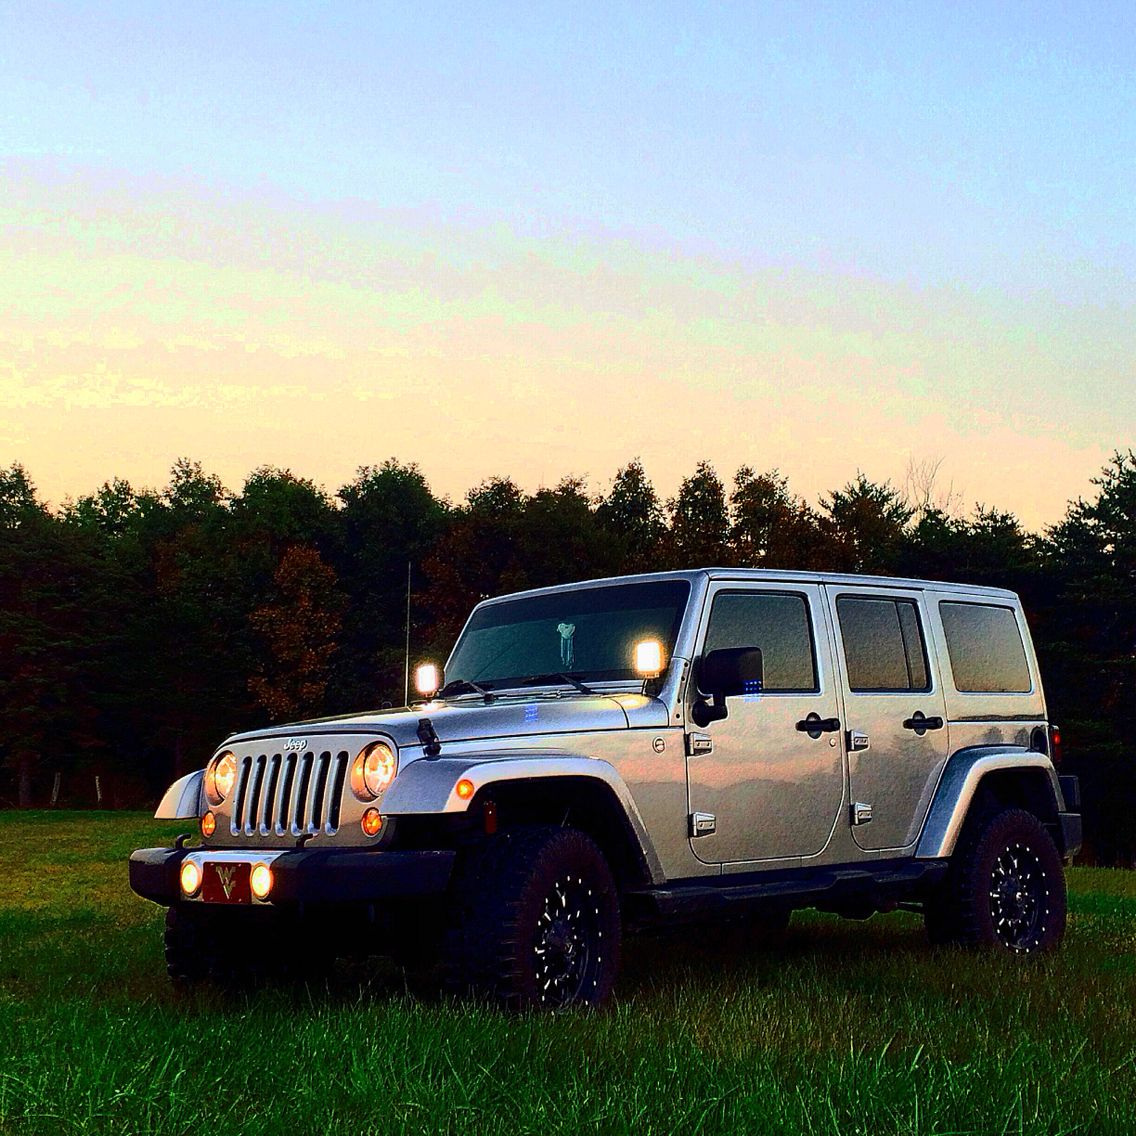 jeeplife Jeep wrangler unlimited, Jeep life, Jeep wrangler